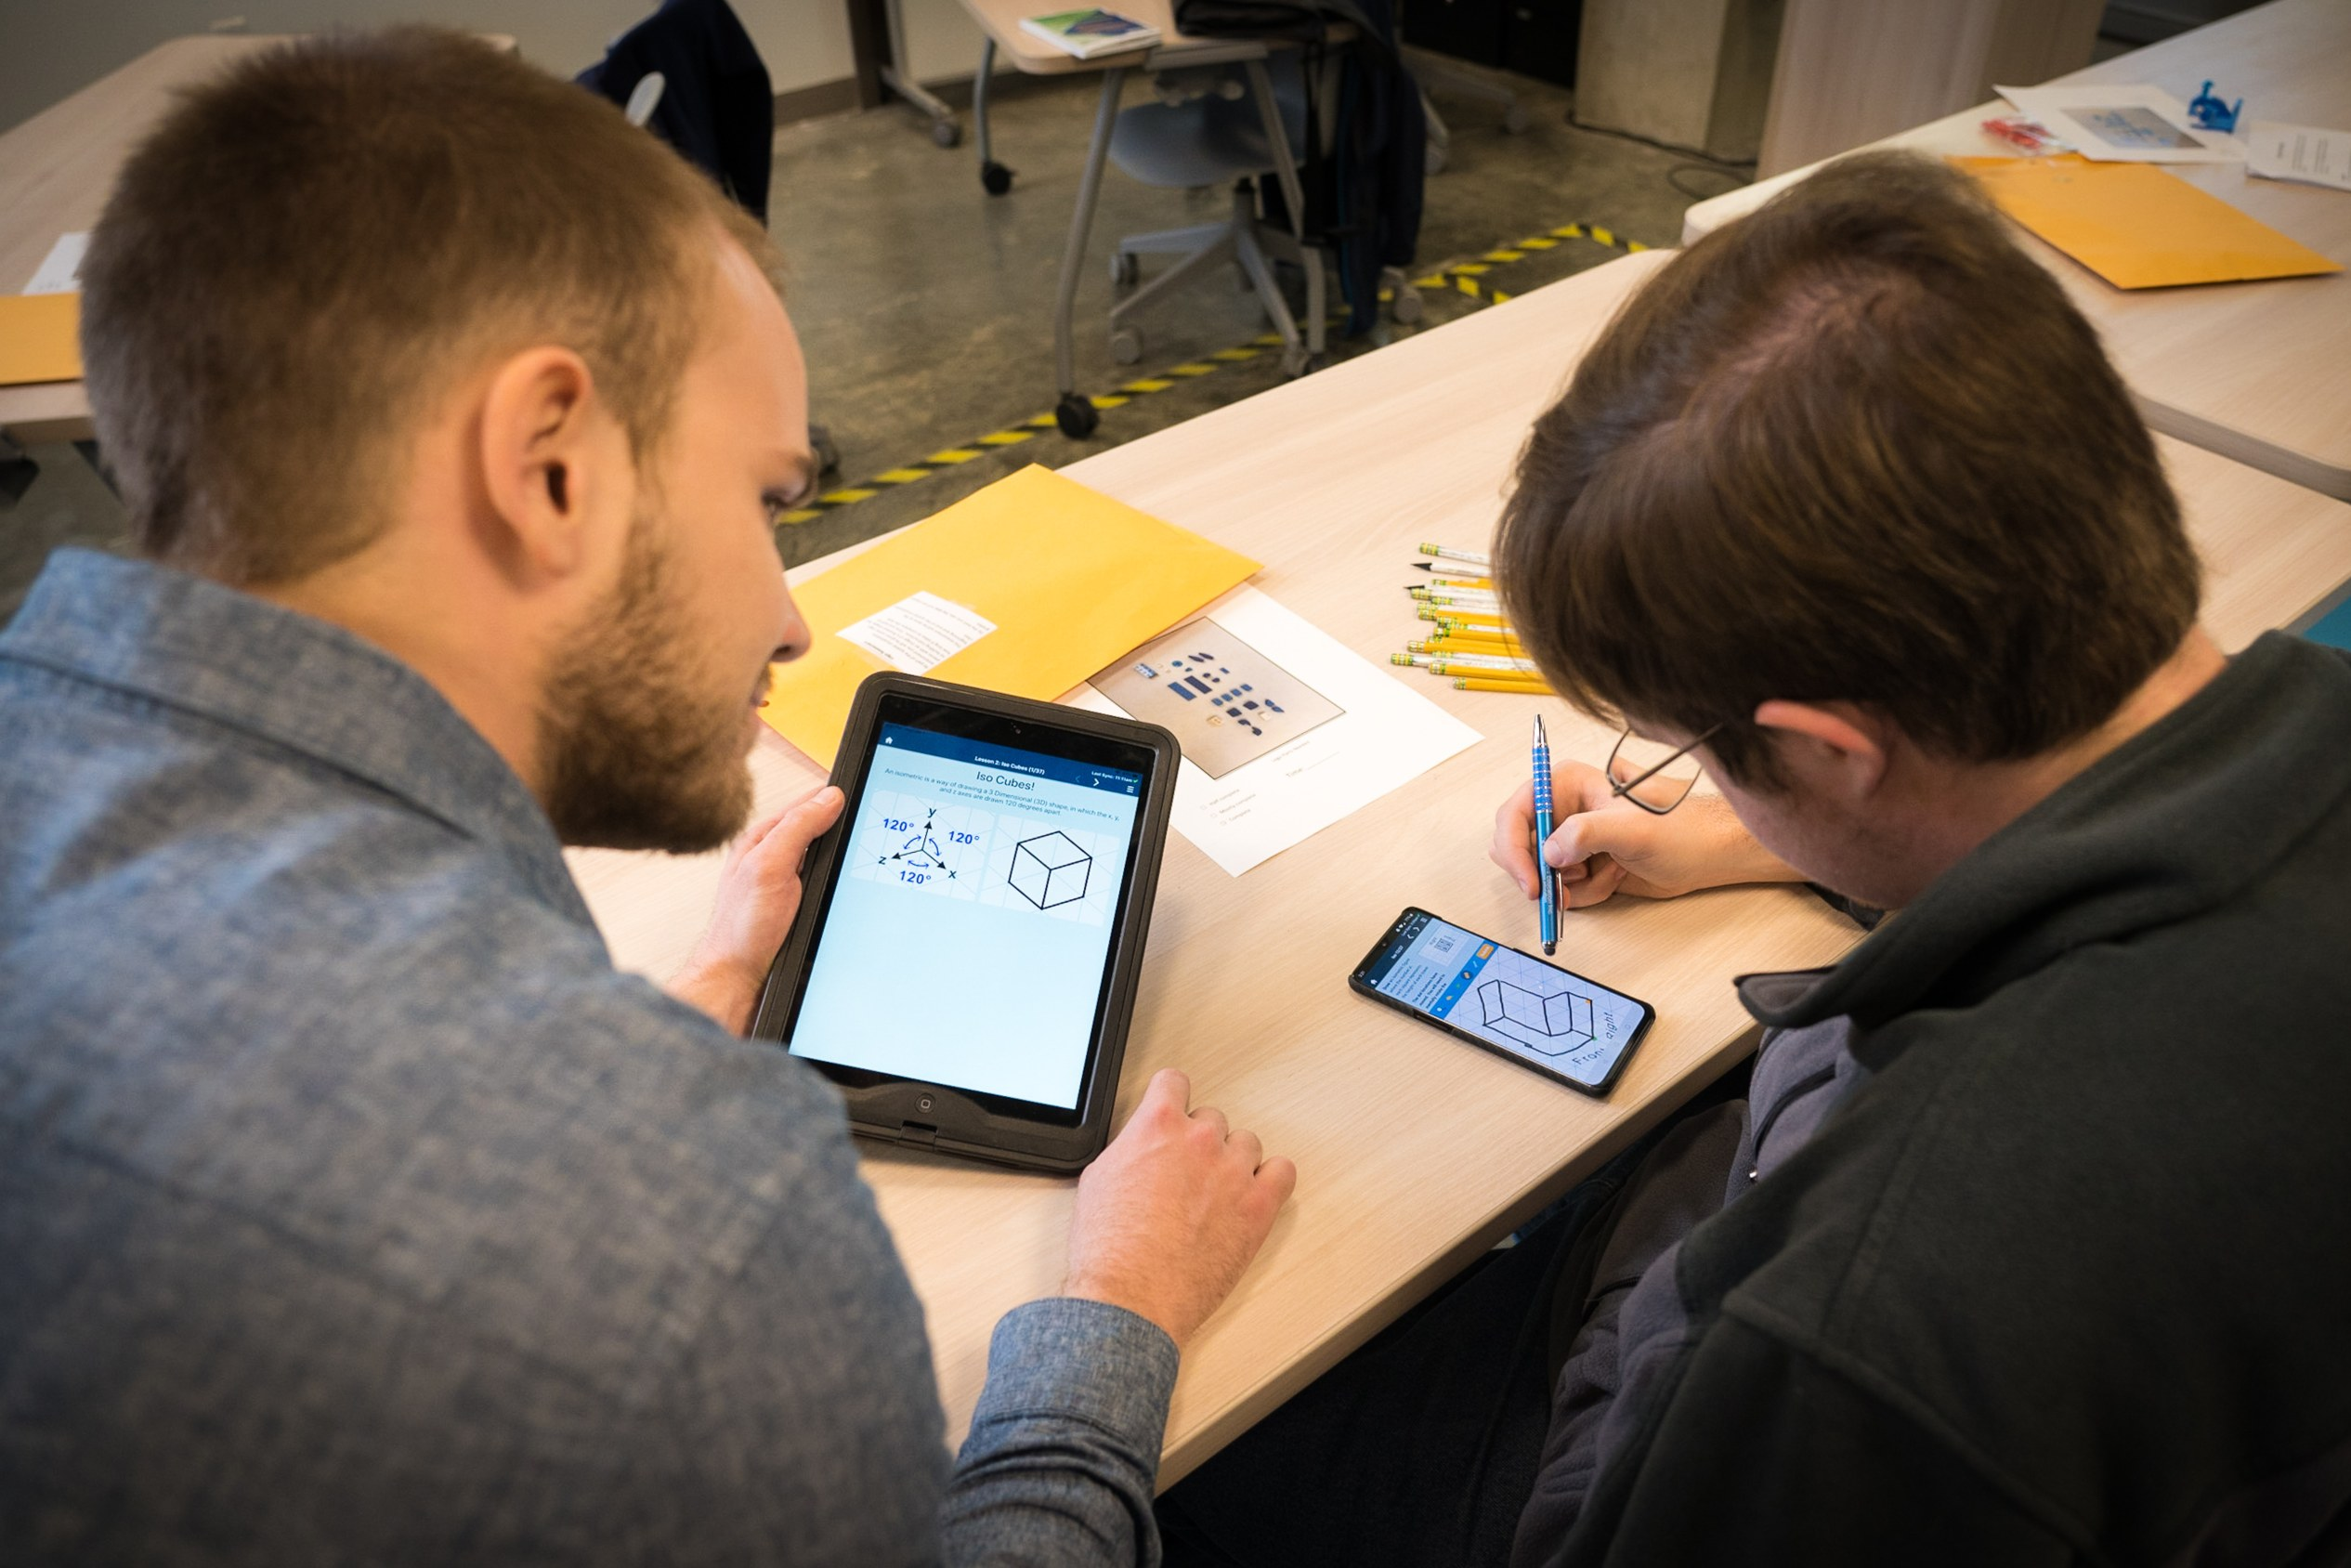 A photo of two people working on a phone and ipad